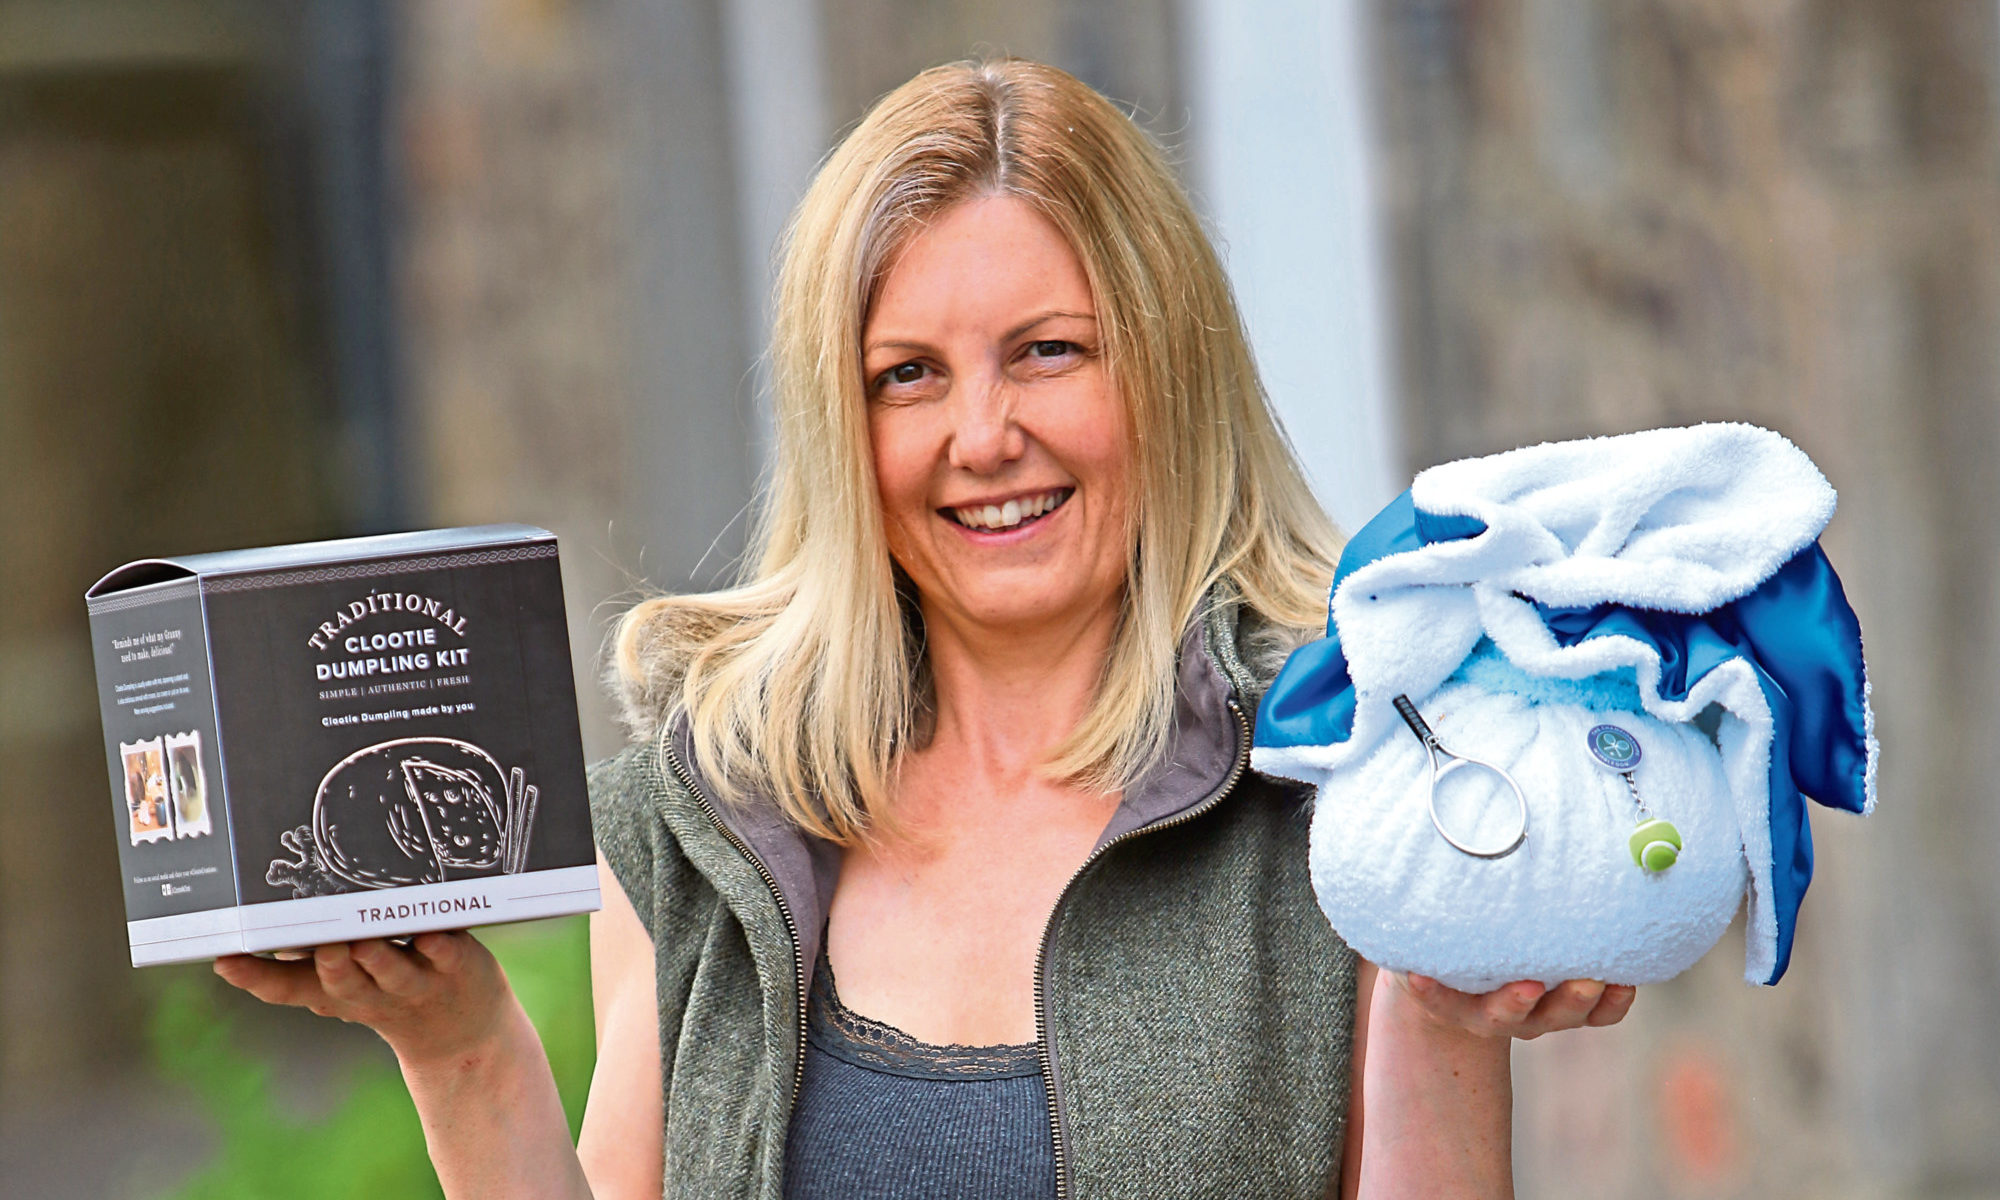 Clootie Mctoot founder Michelle Maddox with some of her company's products.